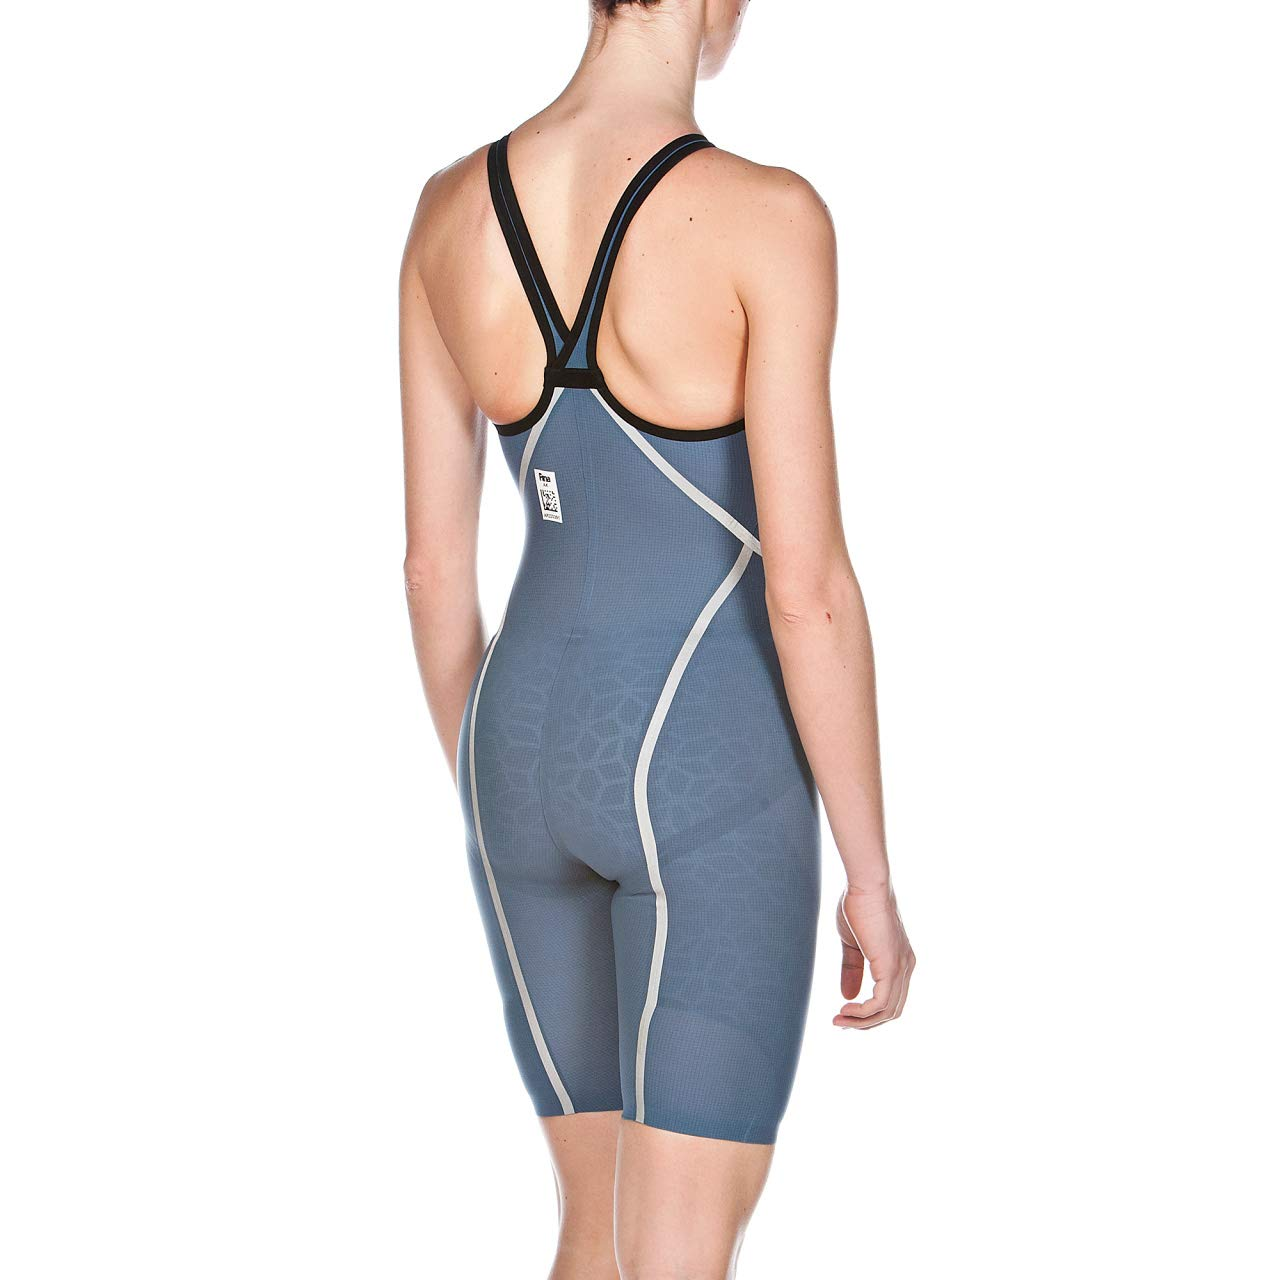 Arena Powerskin Carbon Ultra One Piece Closed Back Womens Racing Suit